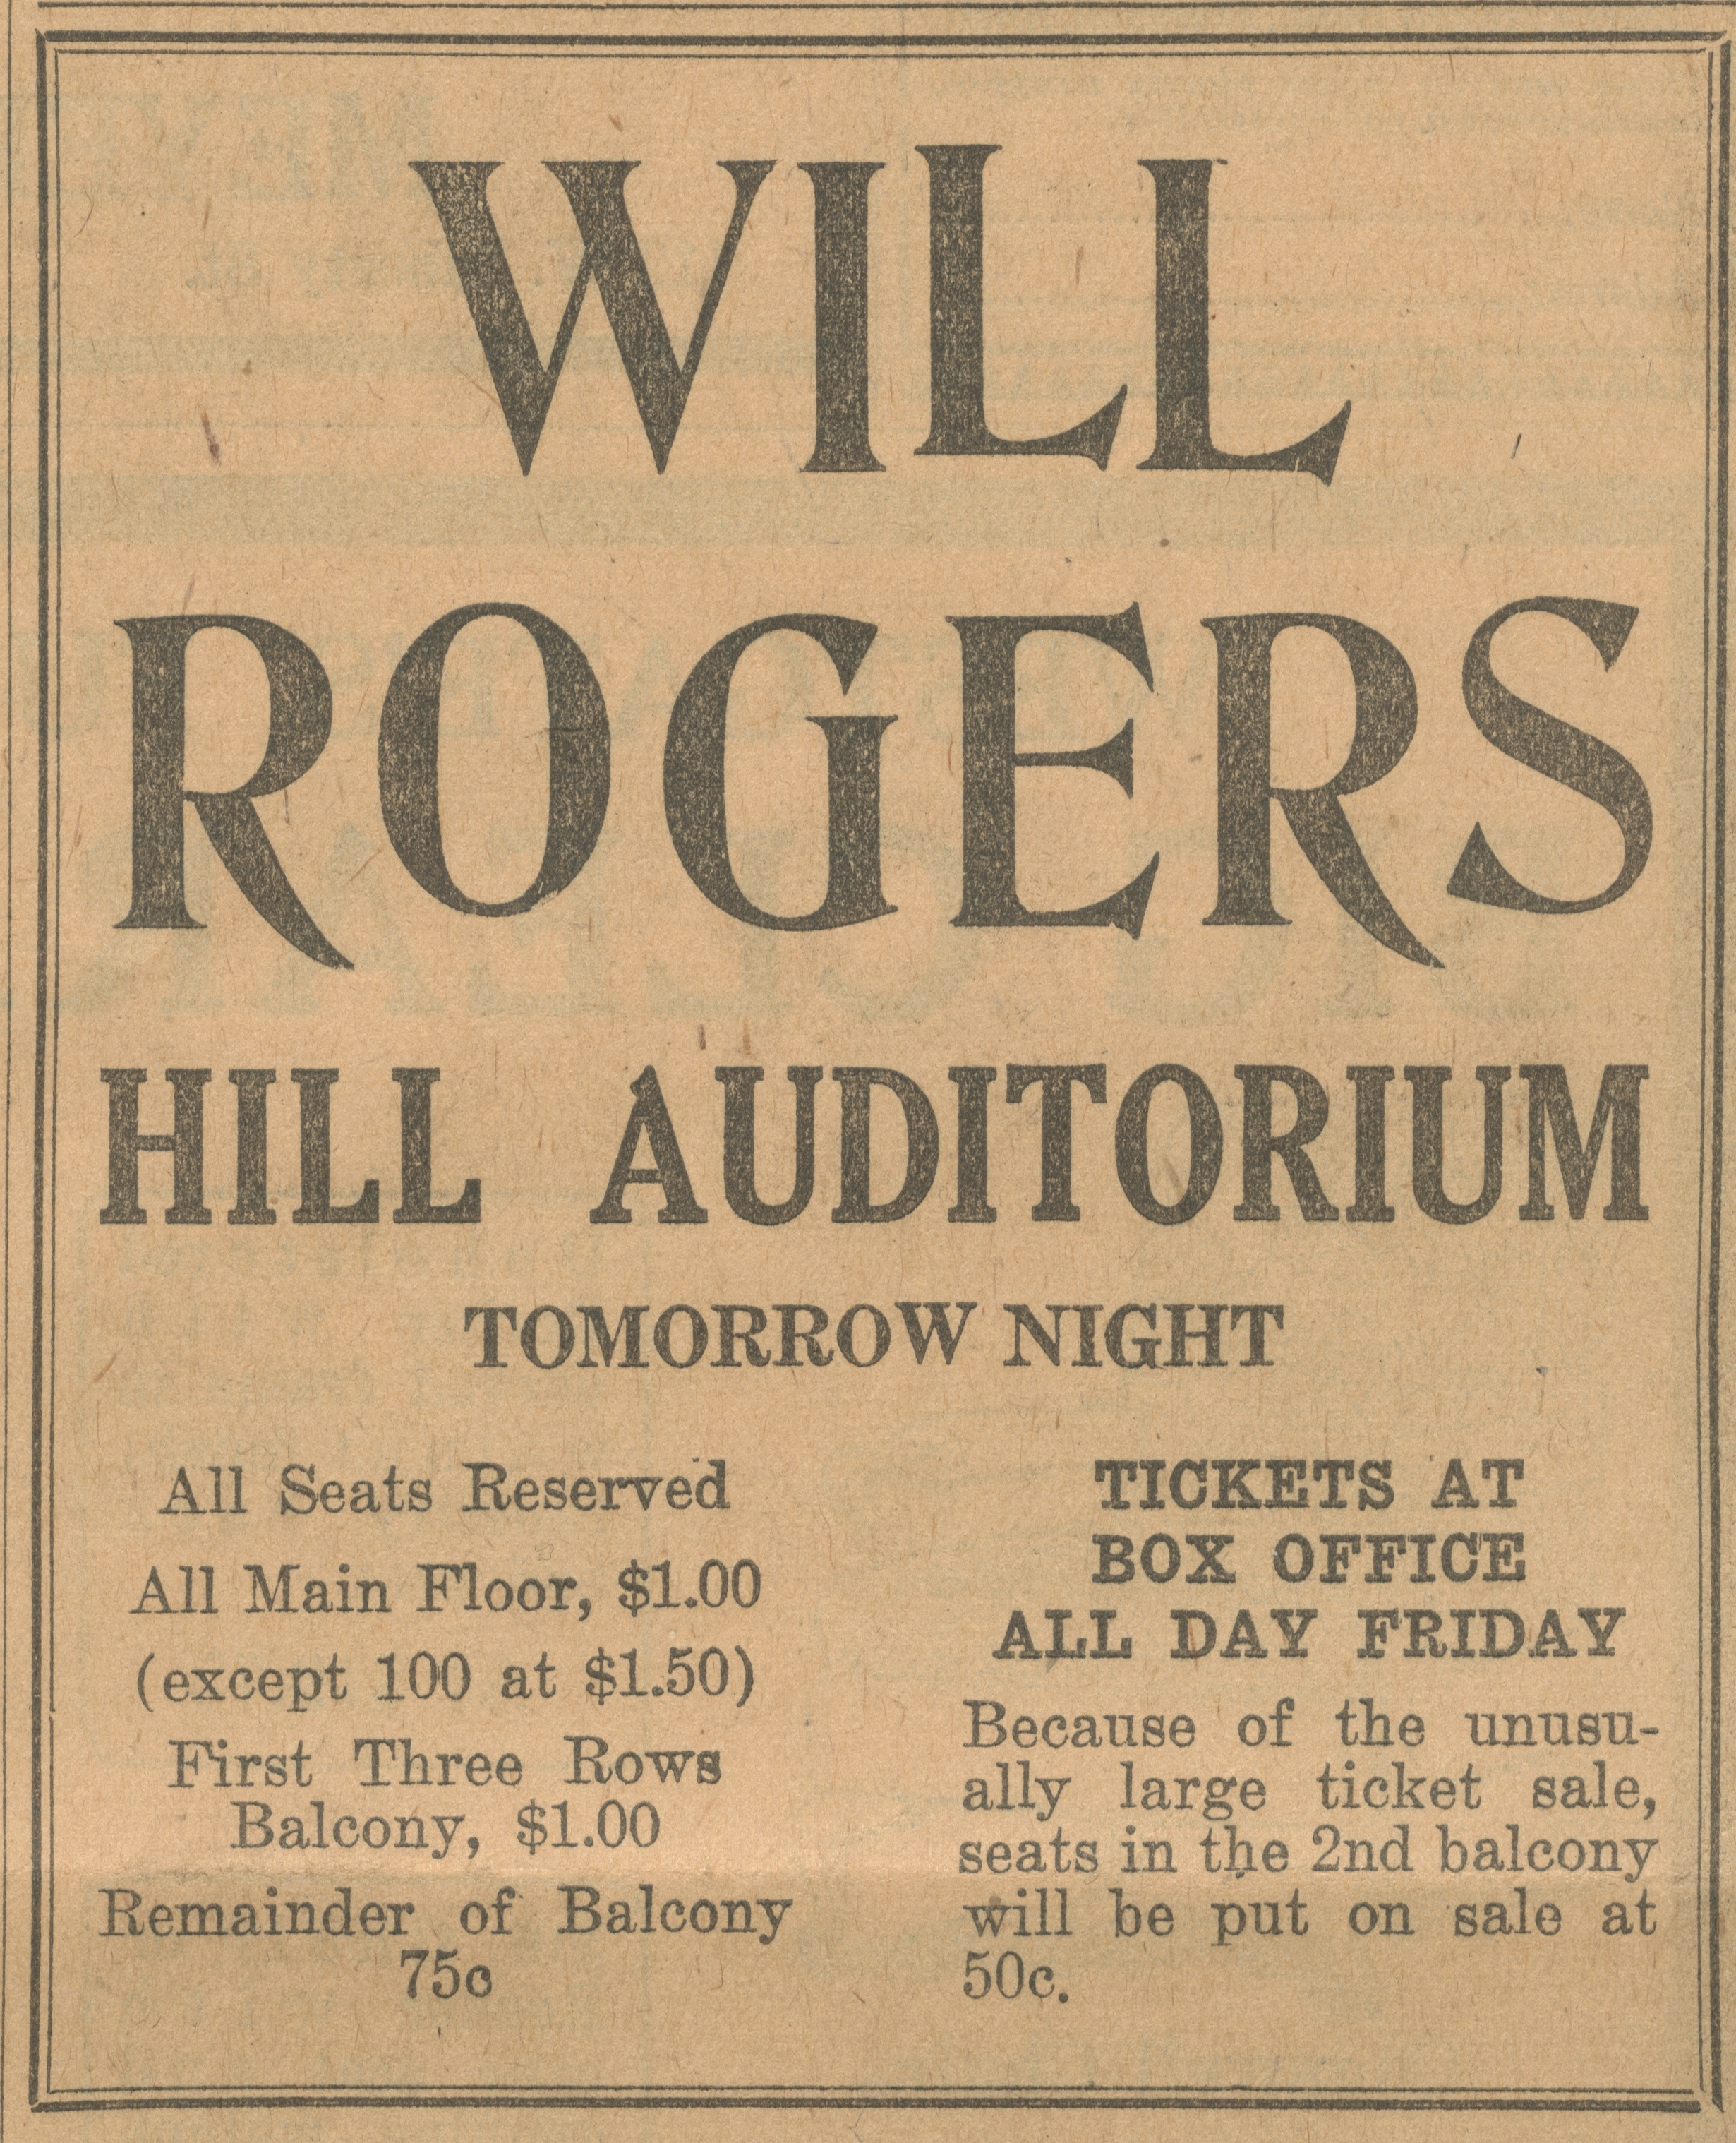 Will Rogers Hill Auditorium Tomorrow Night - January 6, 1927 image